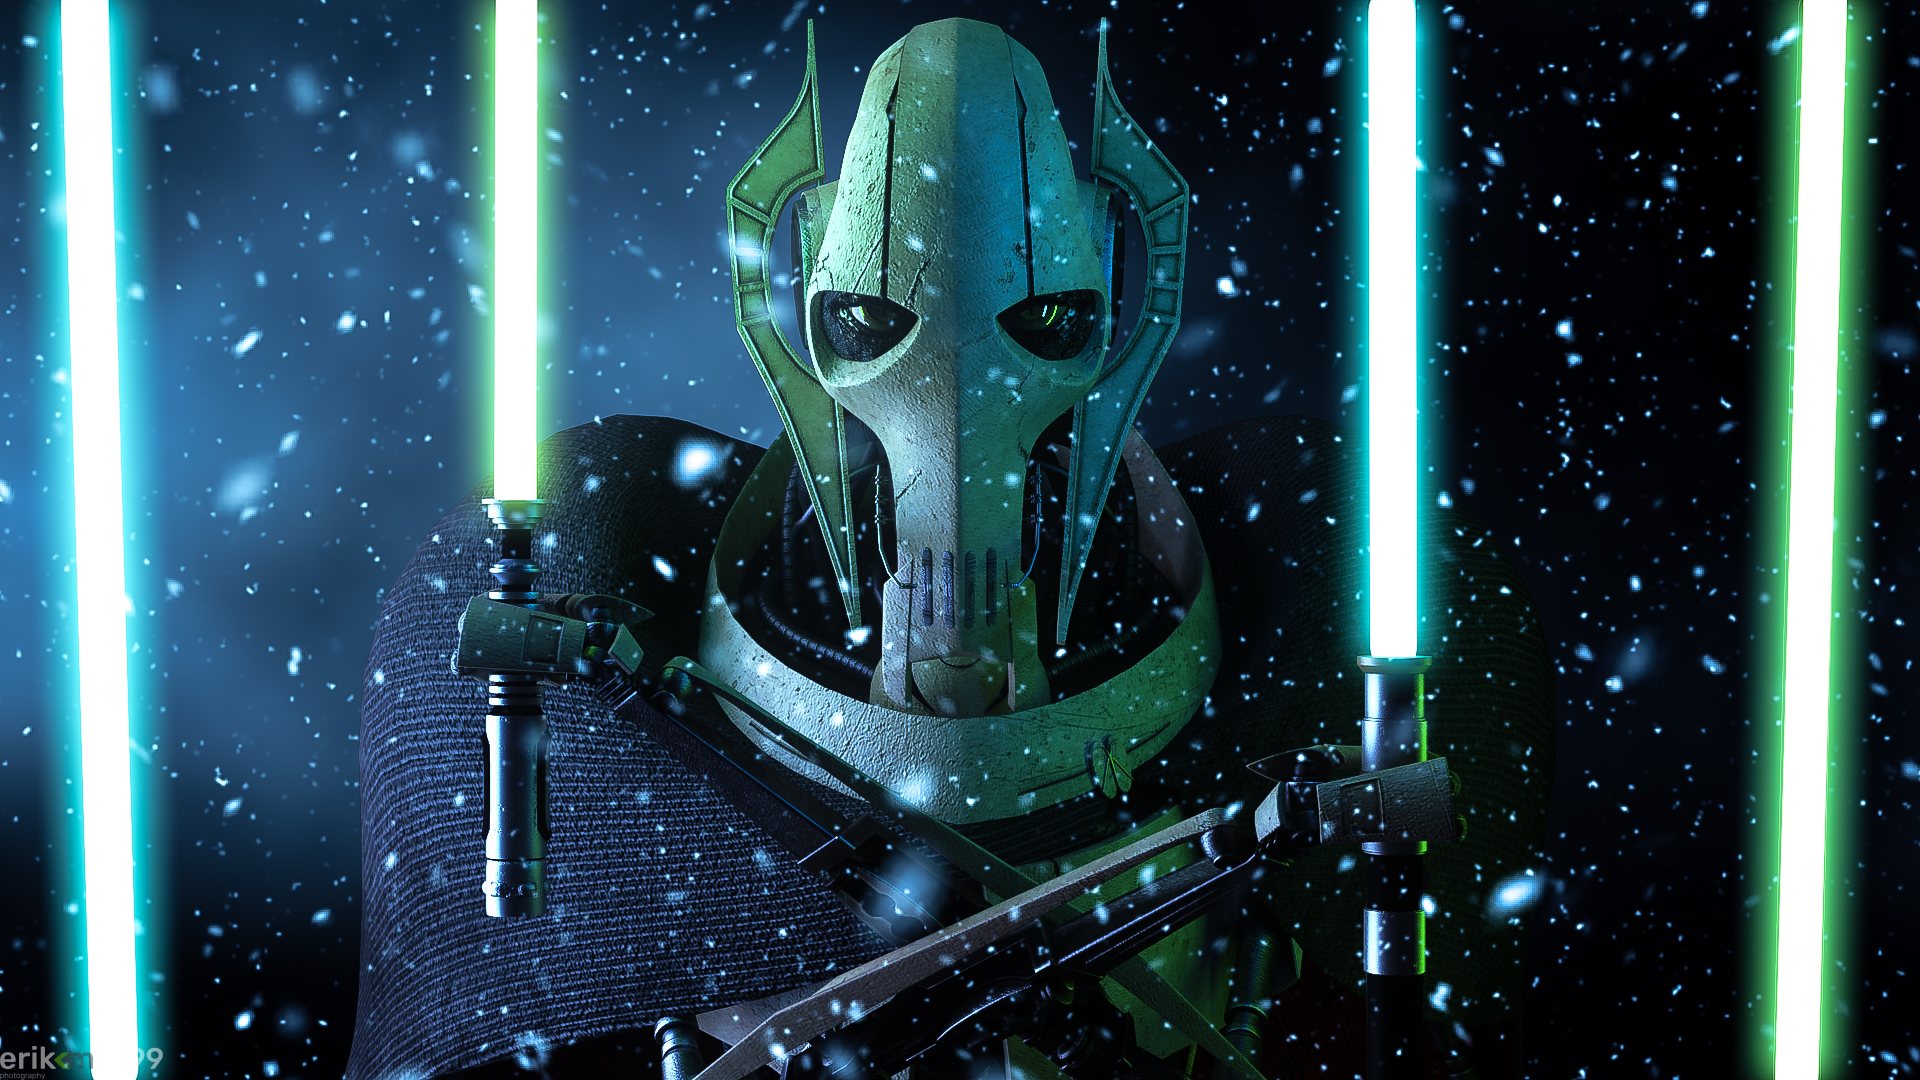 Your lightsabers will make a fine addition...